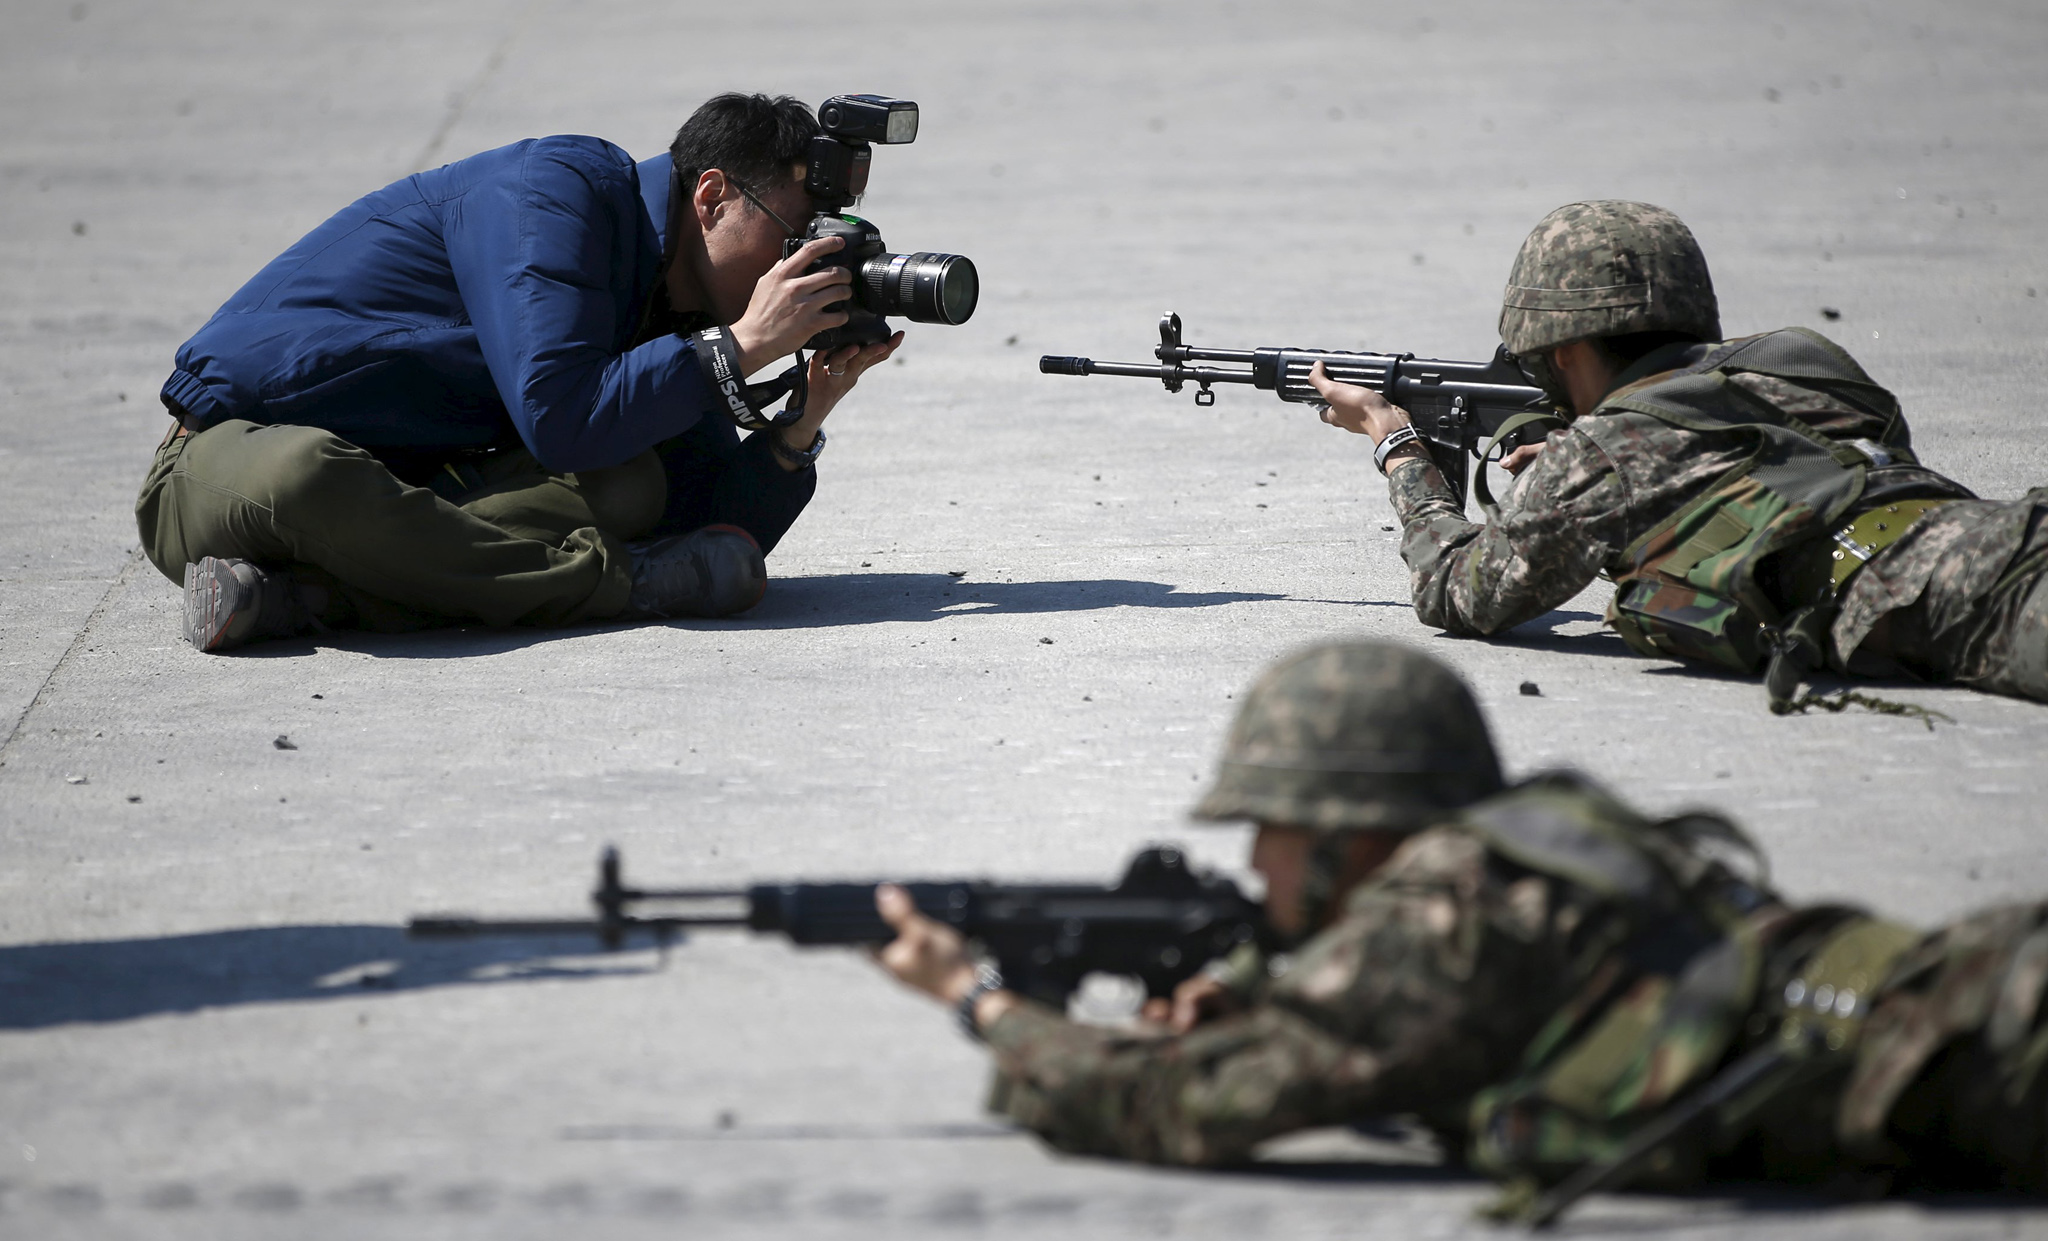 A photographer takes pictures of South Korean army soldiers taking part in a U.S.-South Korea joint live-fire military exercise at a training field in Pocheon, south of the demilitarized zone.